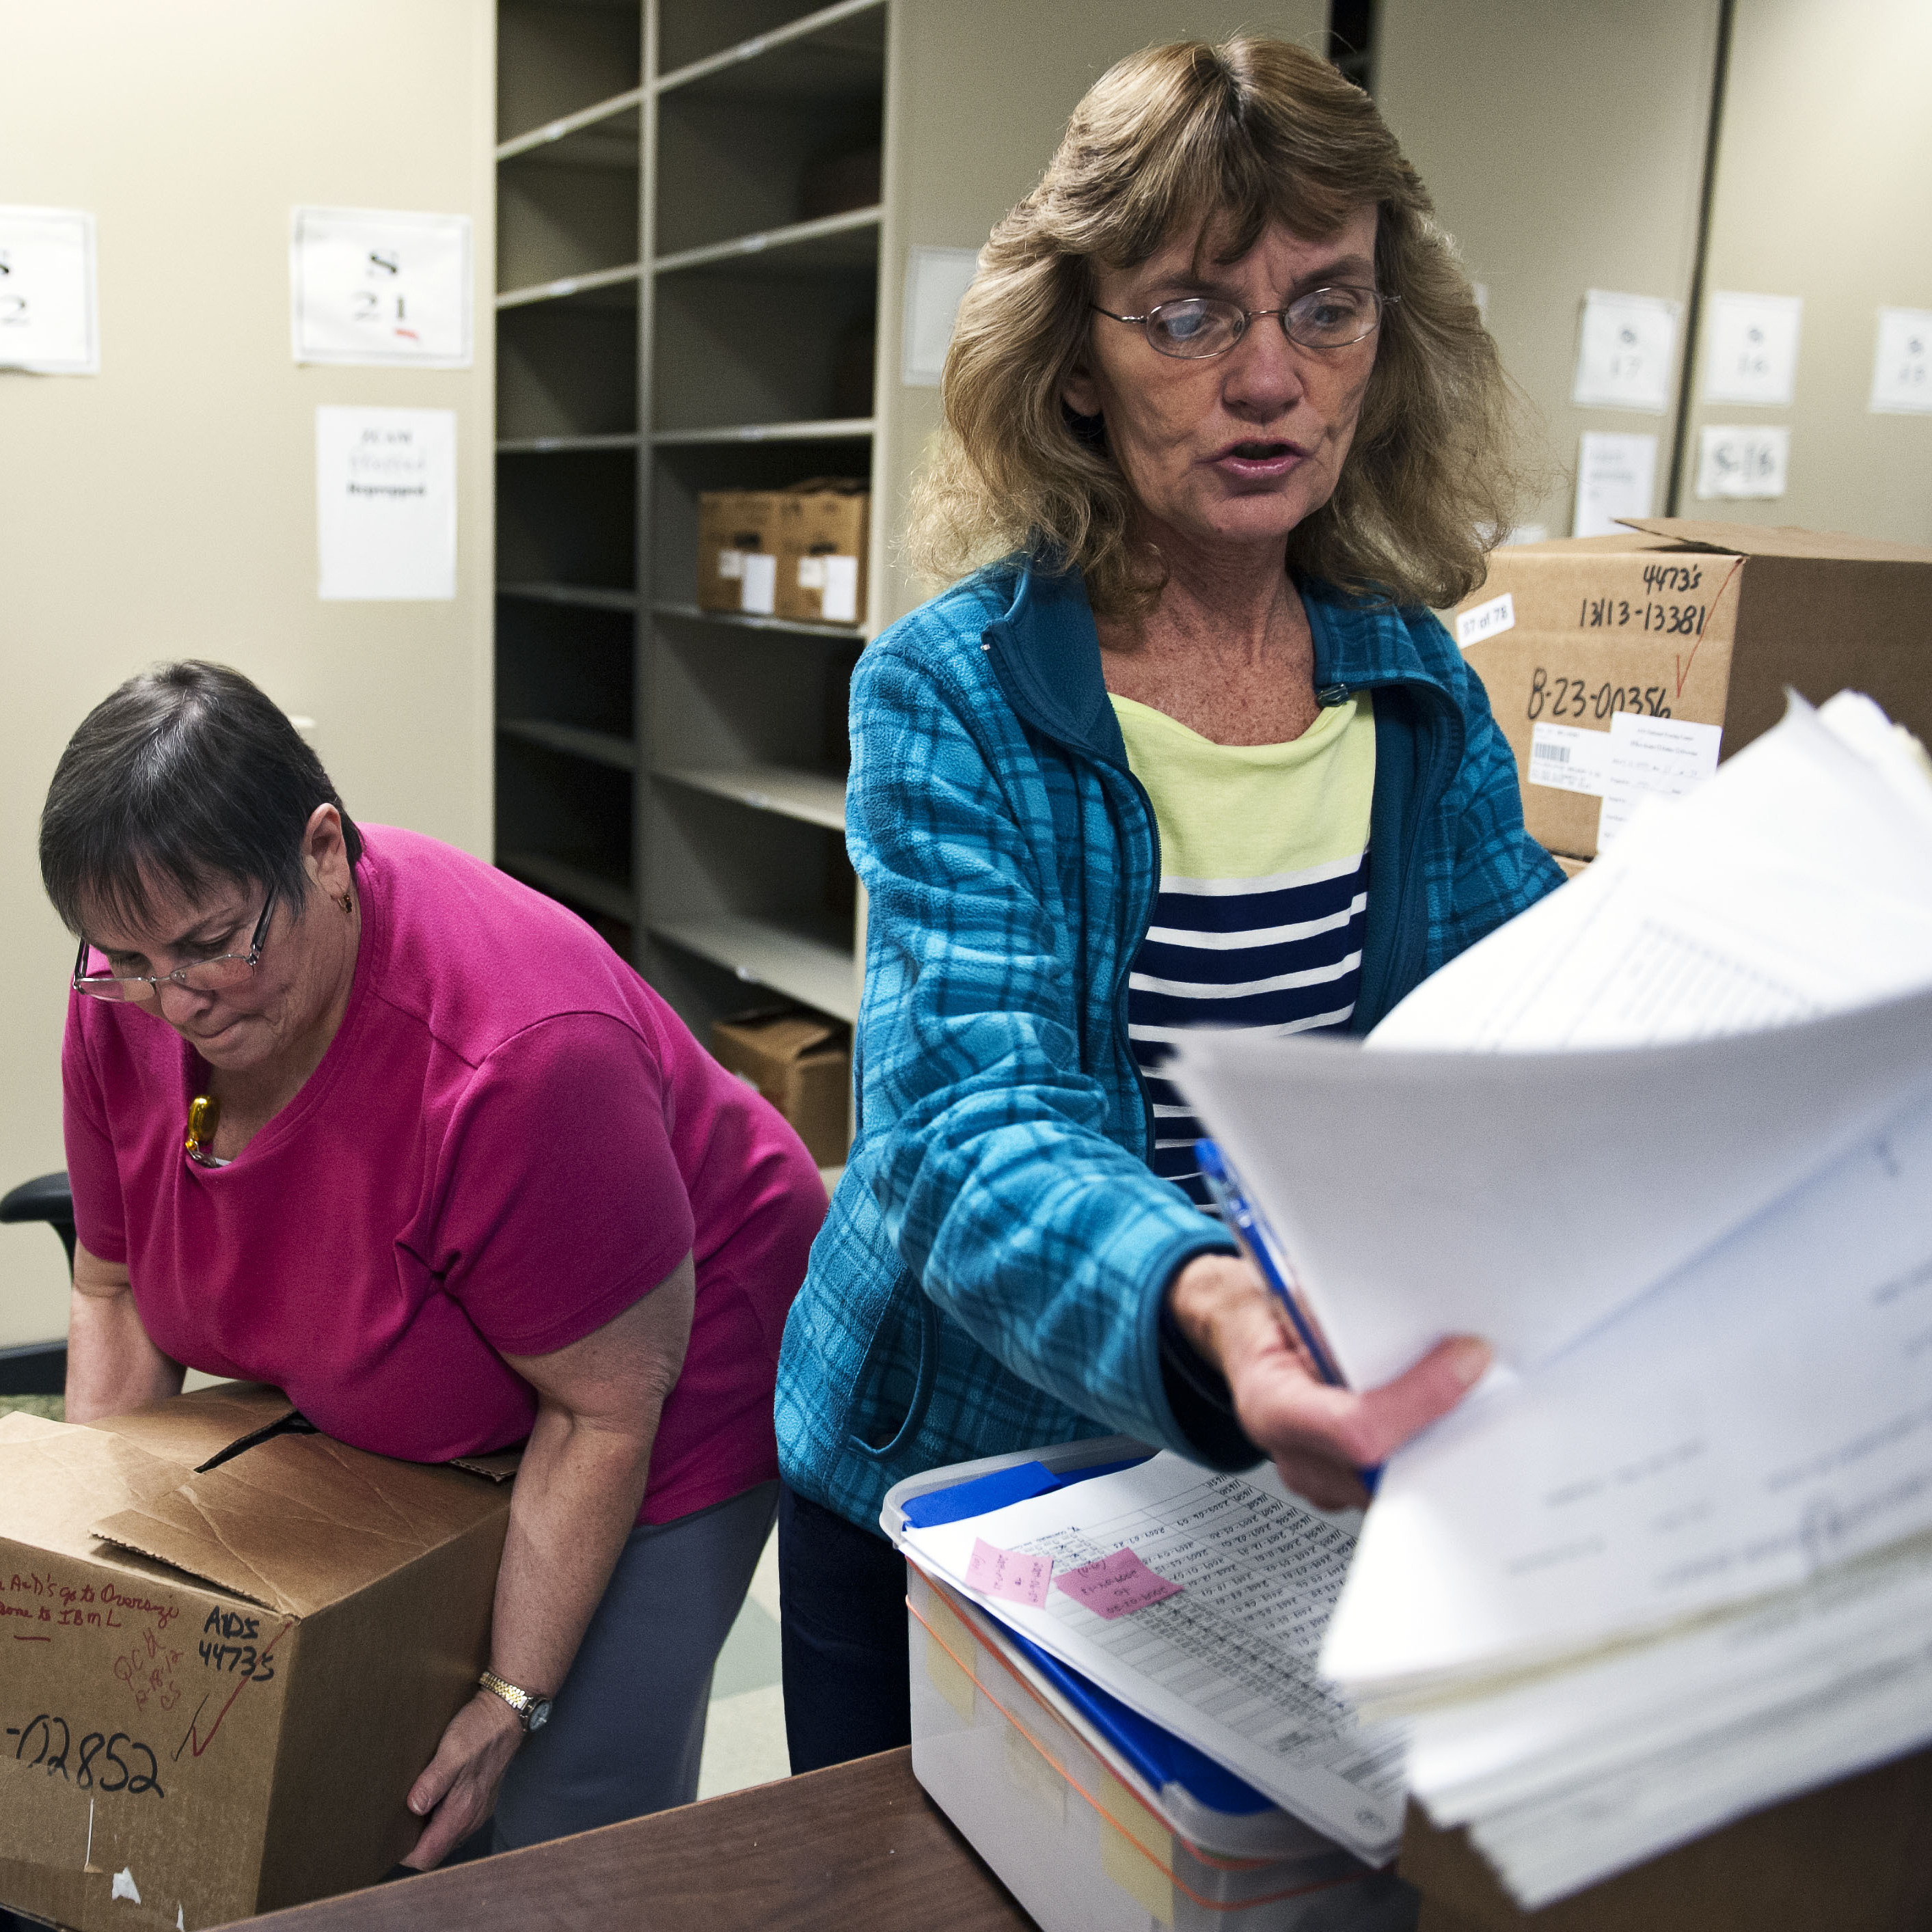 Document prep technician Carol Sine (left) and tracer Debra Barrett process firearm transaction documents at the National Trace Center in Martinsburg, W.Va.